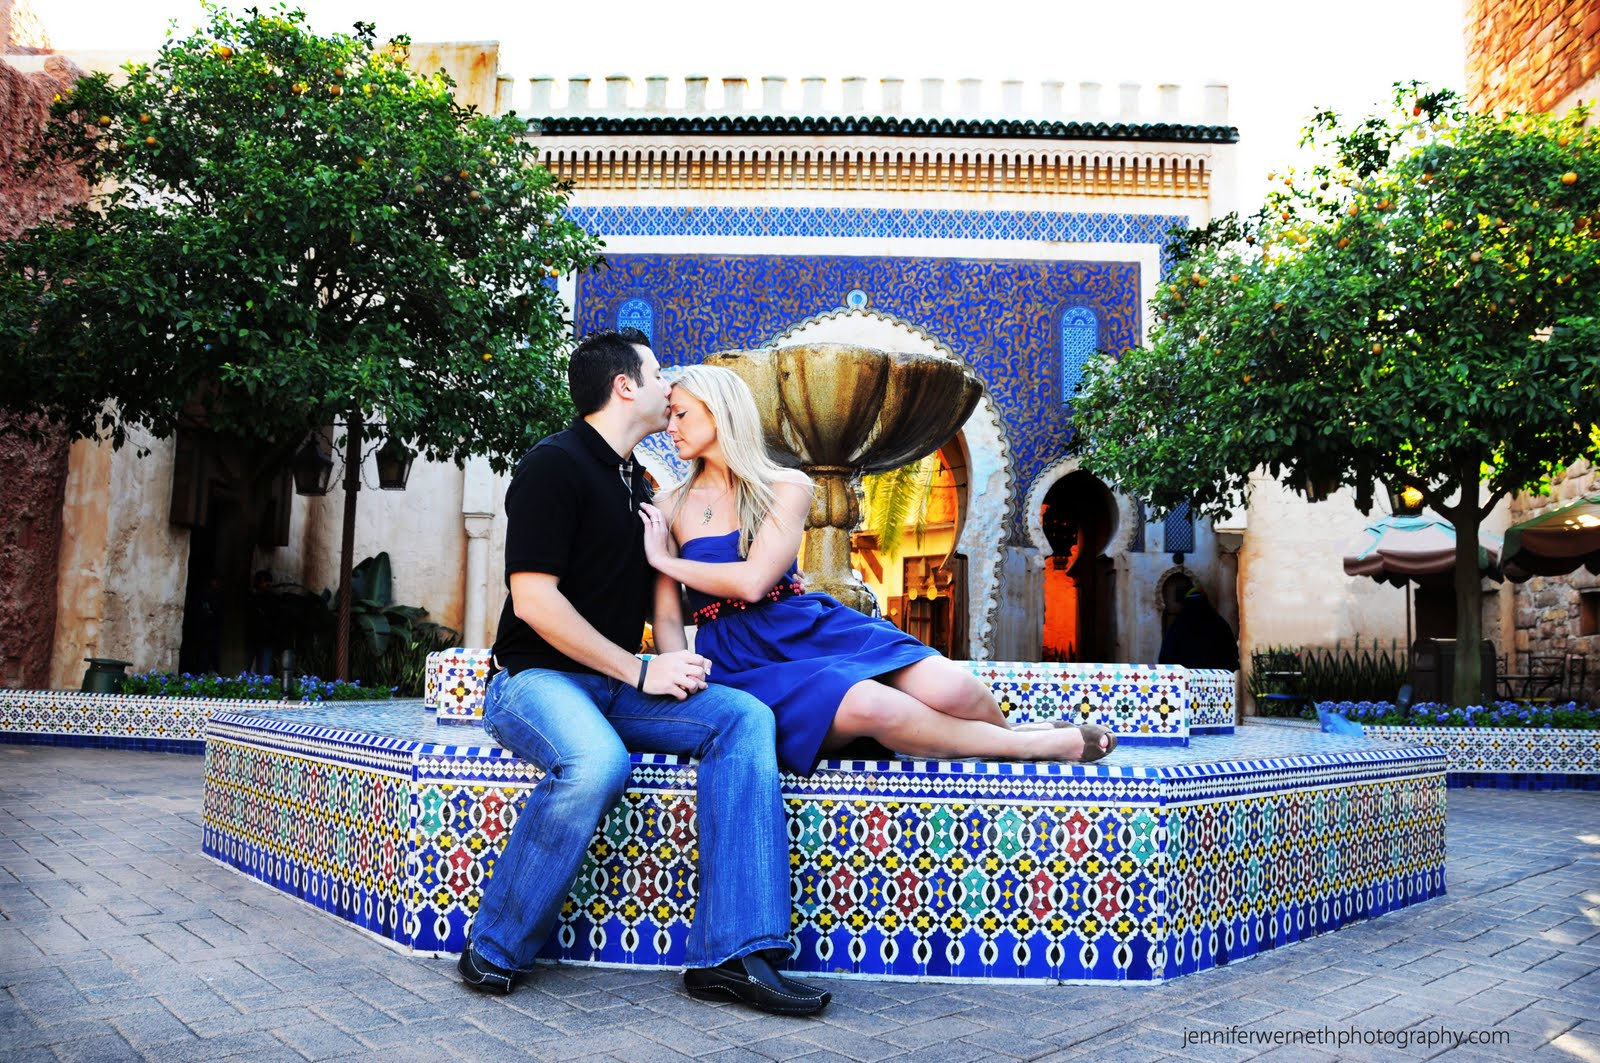 Gianna and Ryan's Engagement Photography Session Epcot in Disney World